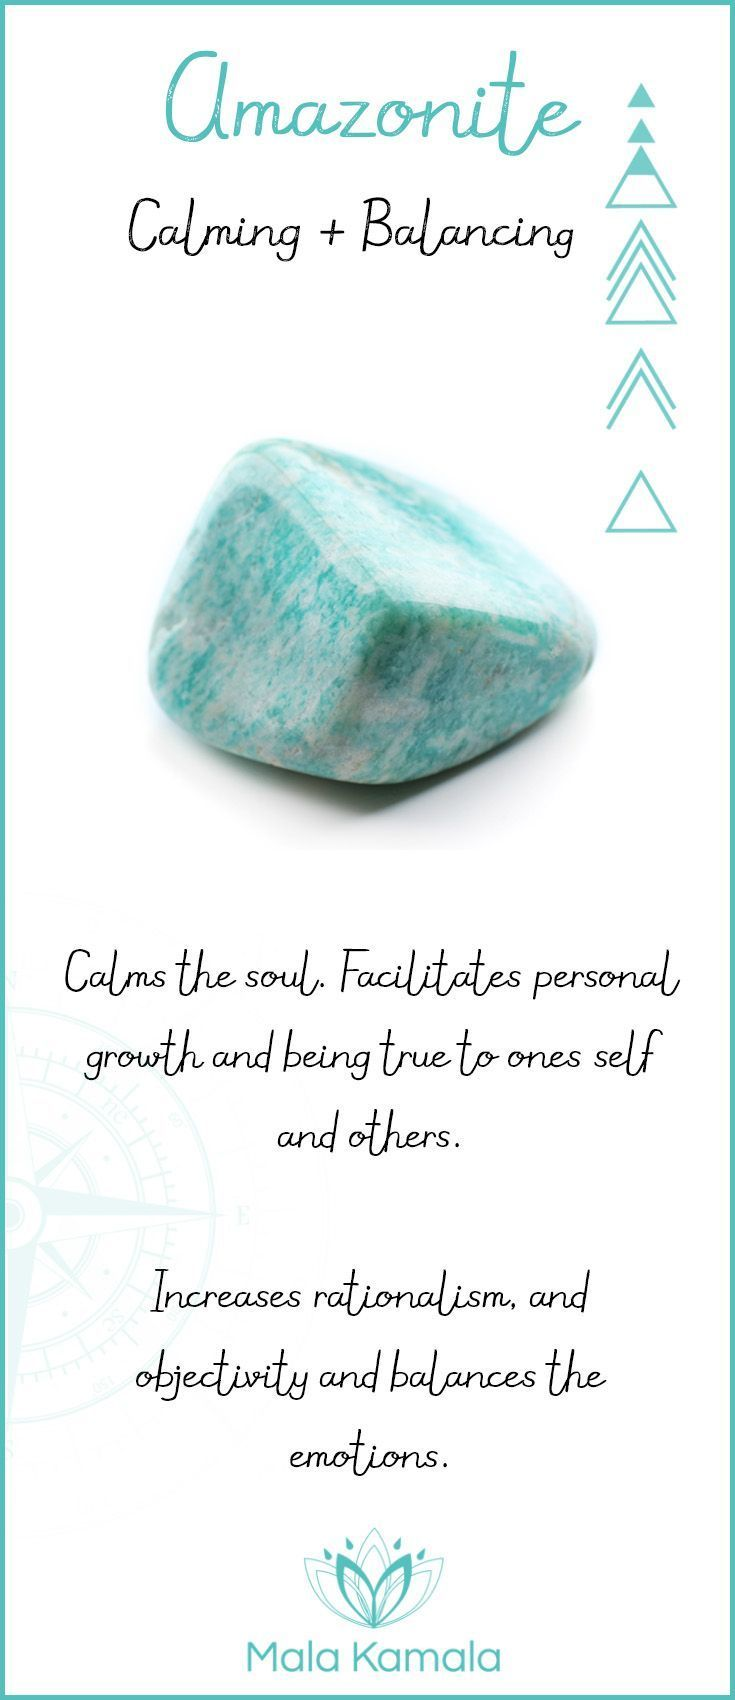 Pin To Save, Tap To Shop The Gem. What is the meaning and crystal and chakra healing properties of amazonite? A stone for calming and balancing. Mala Kamala Mala Beads - Malas, Mala Beads, Mala Bracelets, Tiny Intentions, Baby Necklaces, Yoga Jewelry, Med